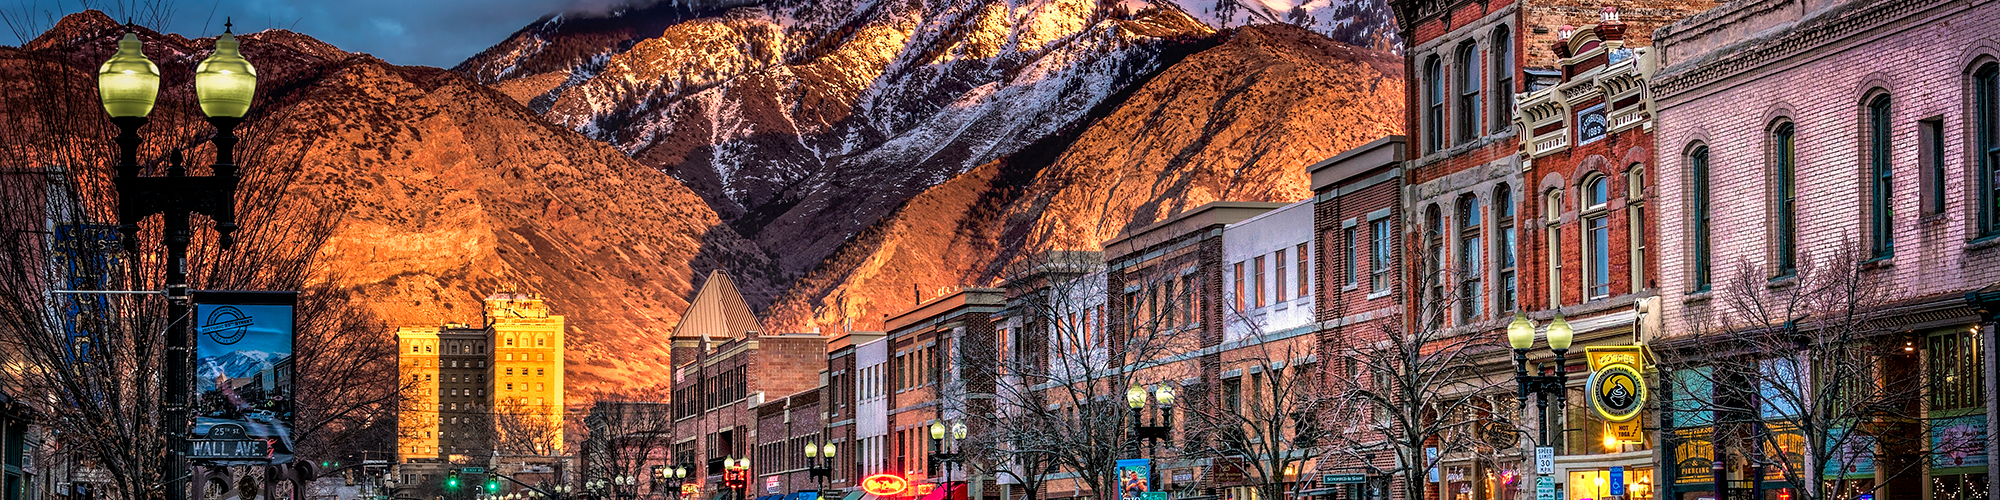 Photography by Mike Ash-Downtown Ogden